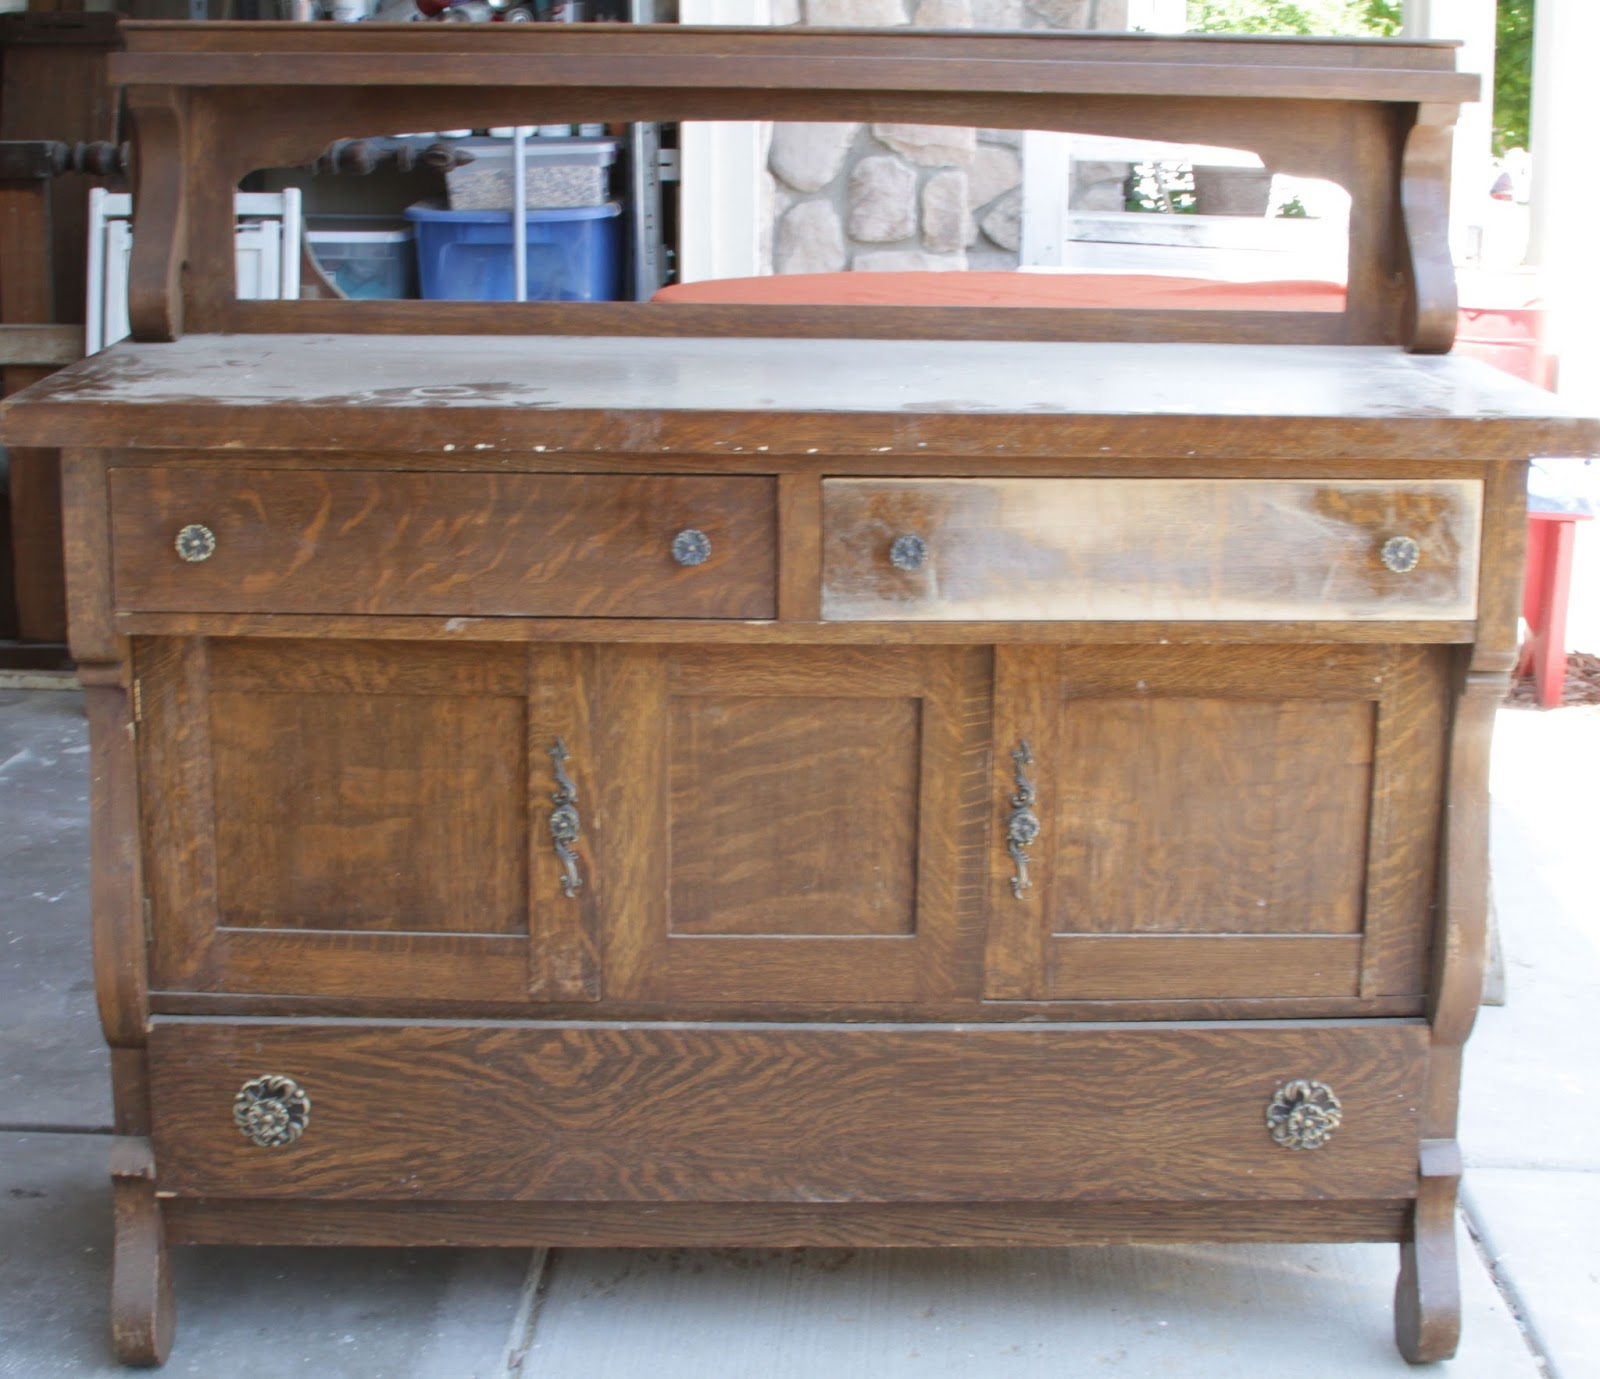 Willow Creek: Antique 16-Toned Distressed Sideboard Buffet